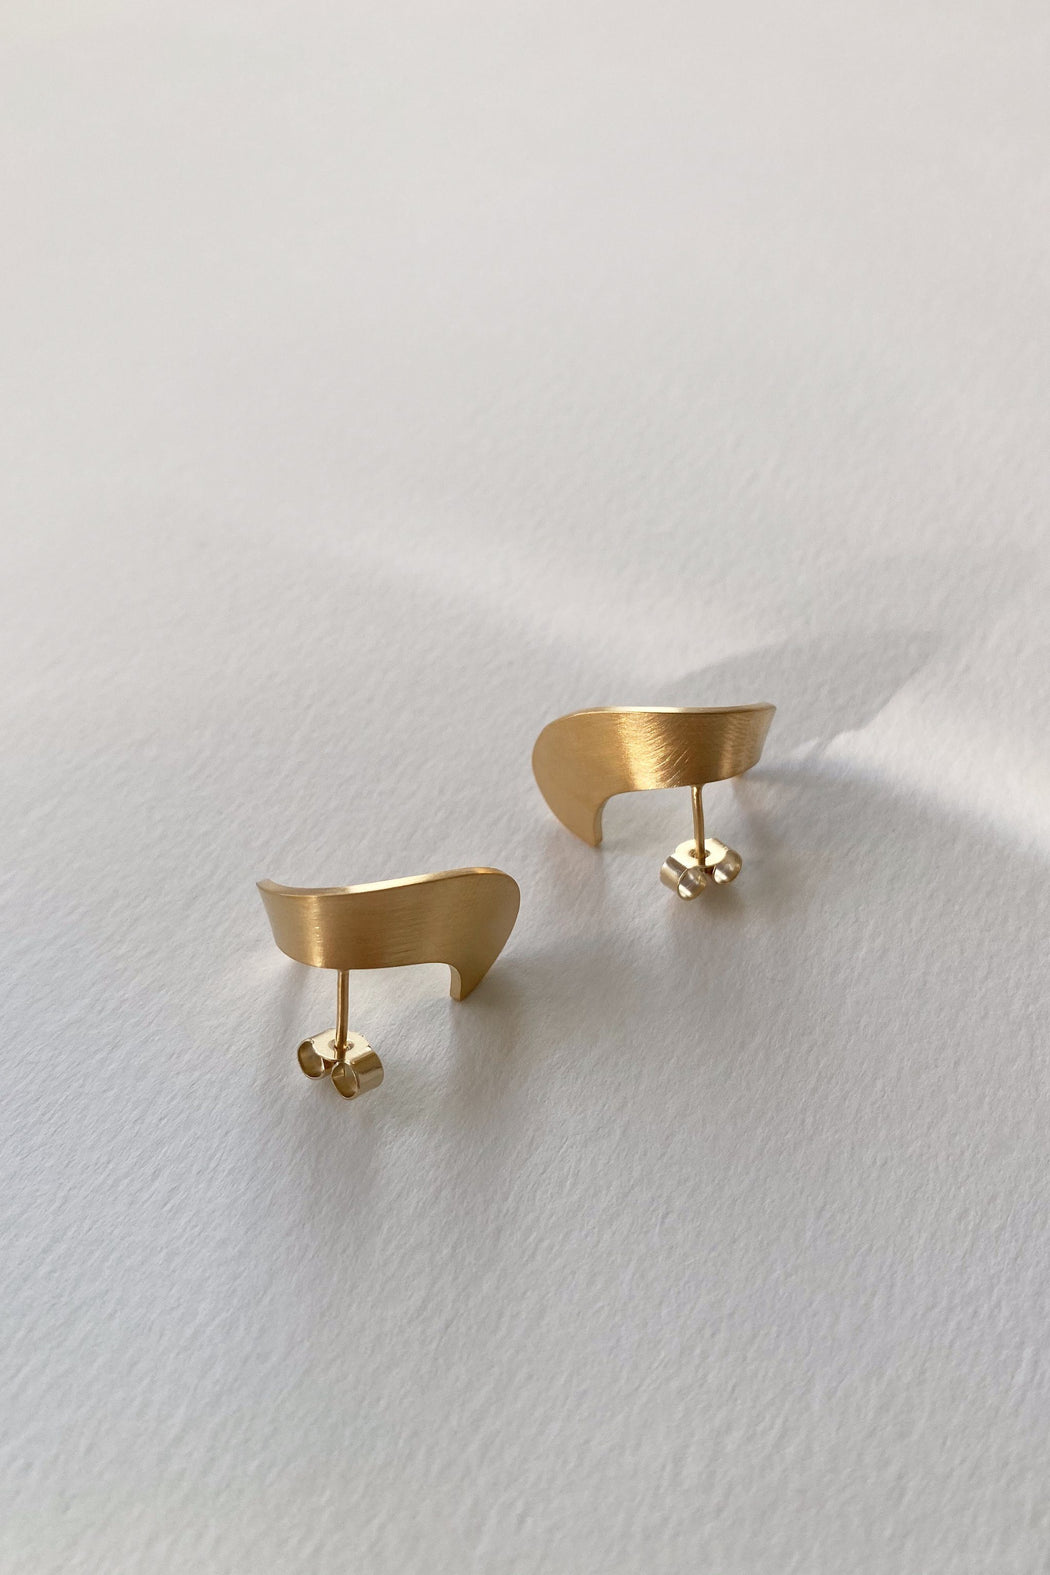 BAIUSHKI FLUAS earrings